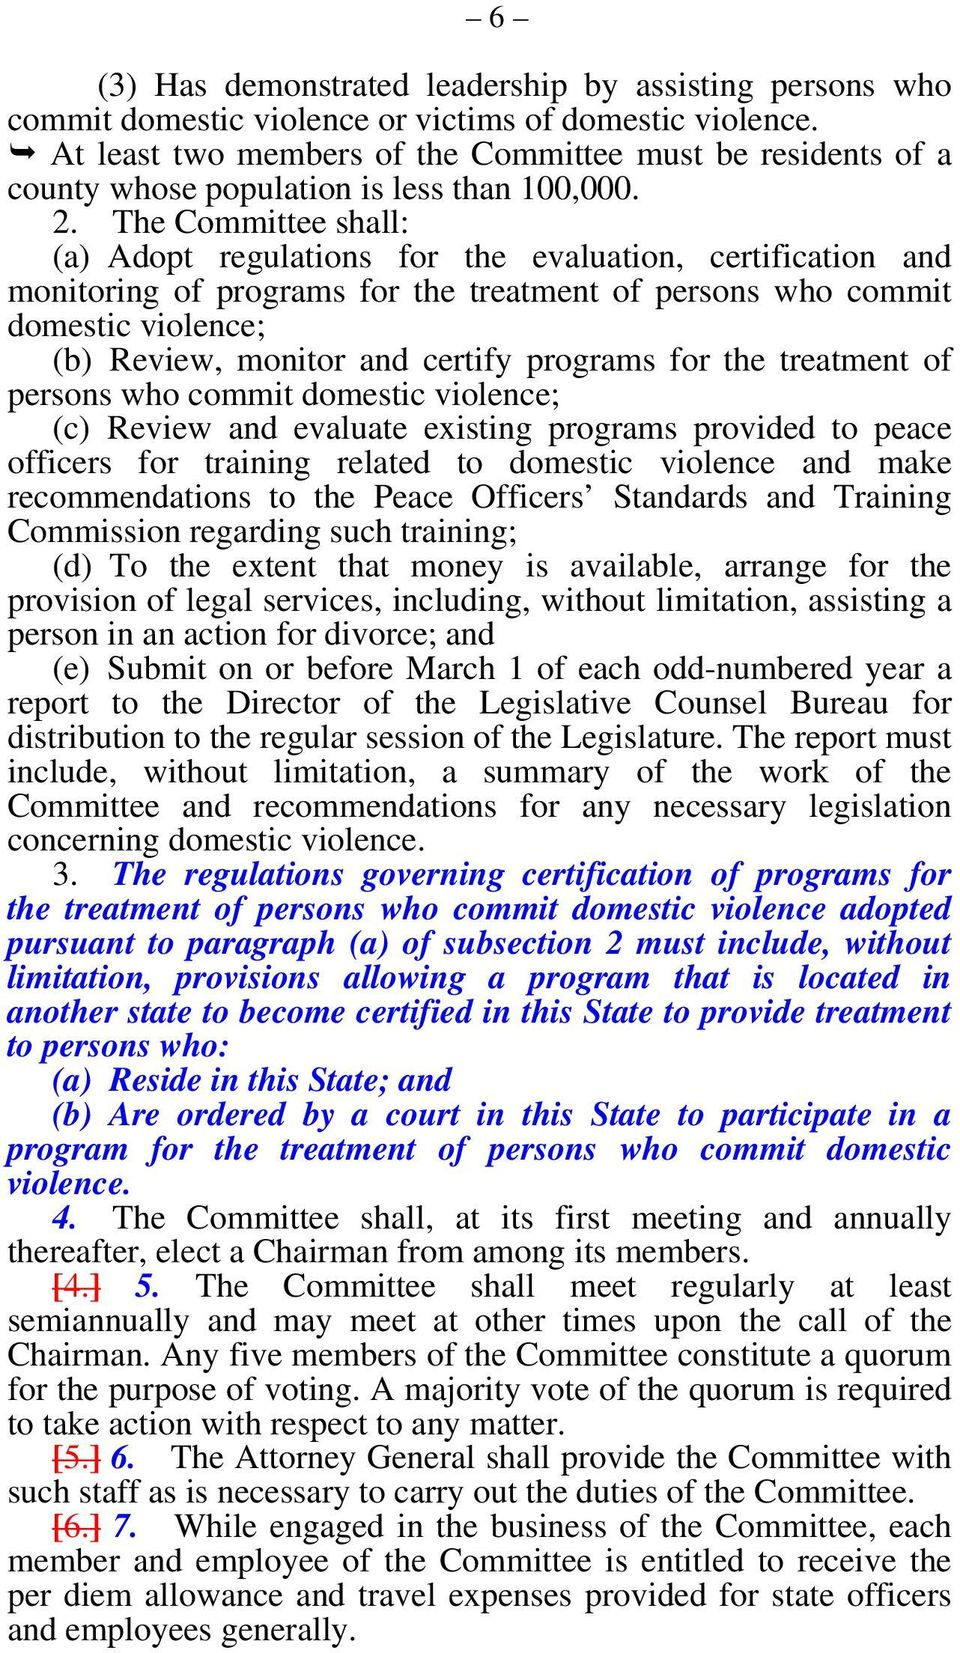 The Committee shall: (a) Adopt regulations for the evaluation, certification and monitoring of programs for the treatment of persons who commit domestic violence; (b) Review, monitor and certify